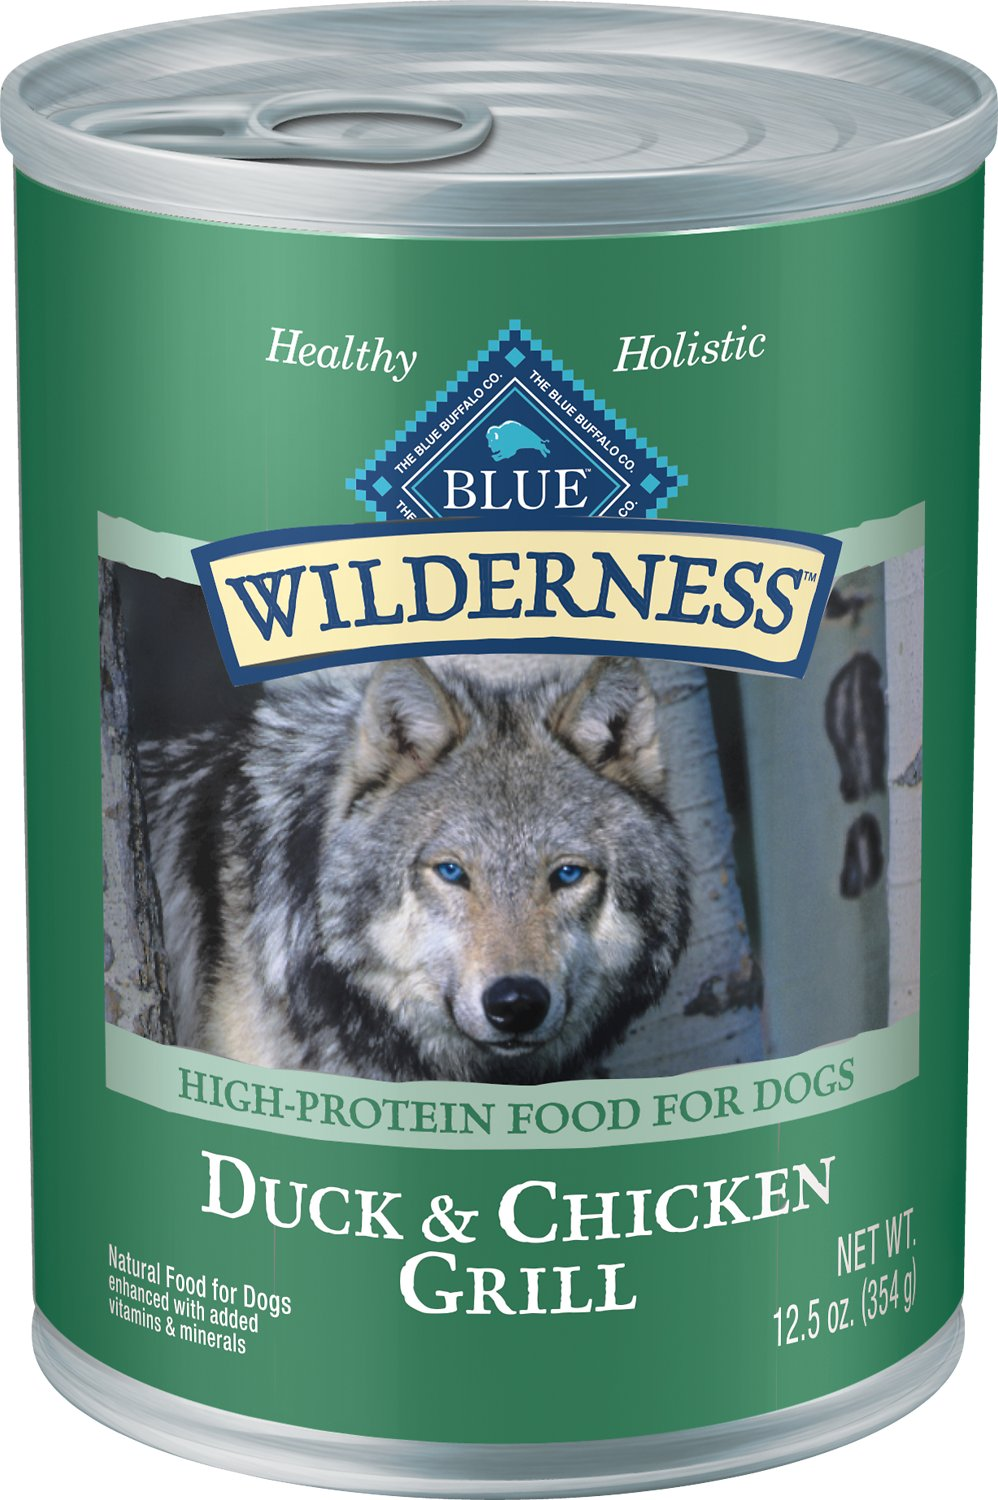 Blue Buffalo Wilderness Grain Free Dog Food Reviews